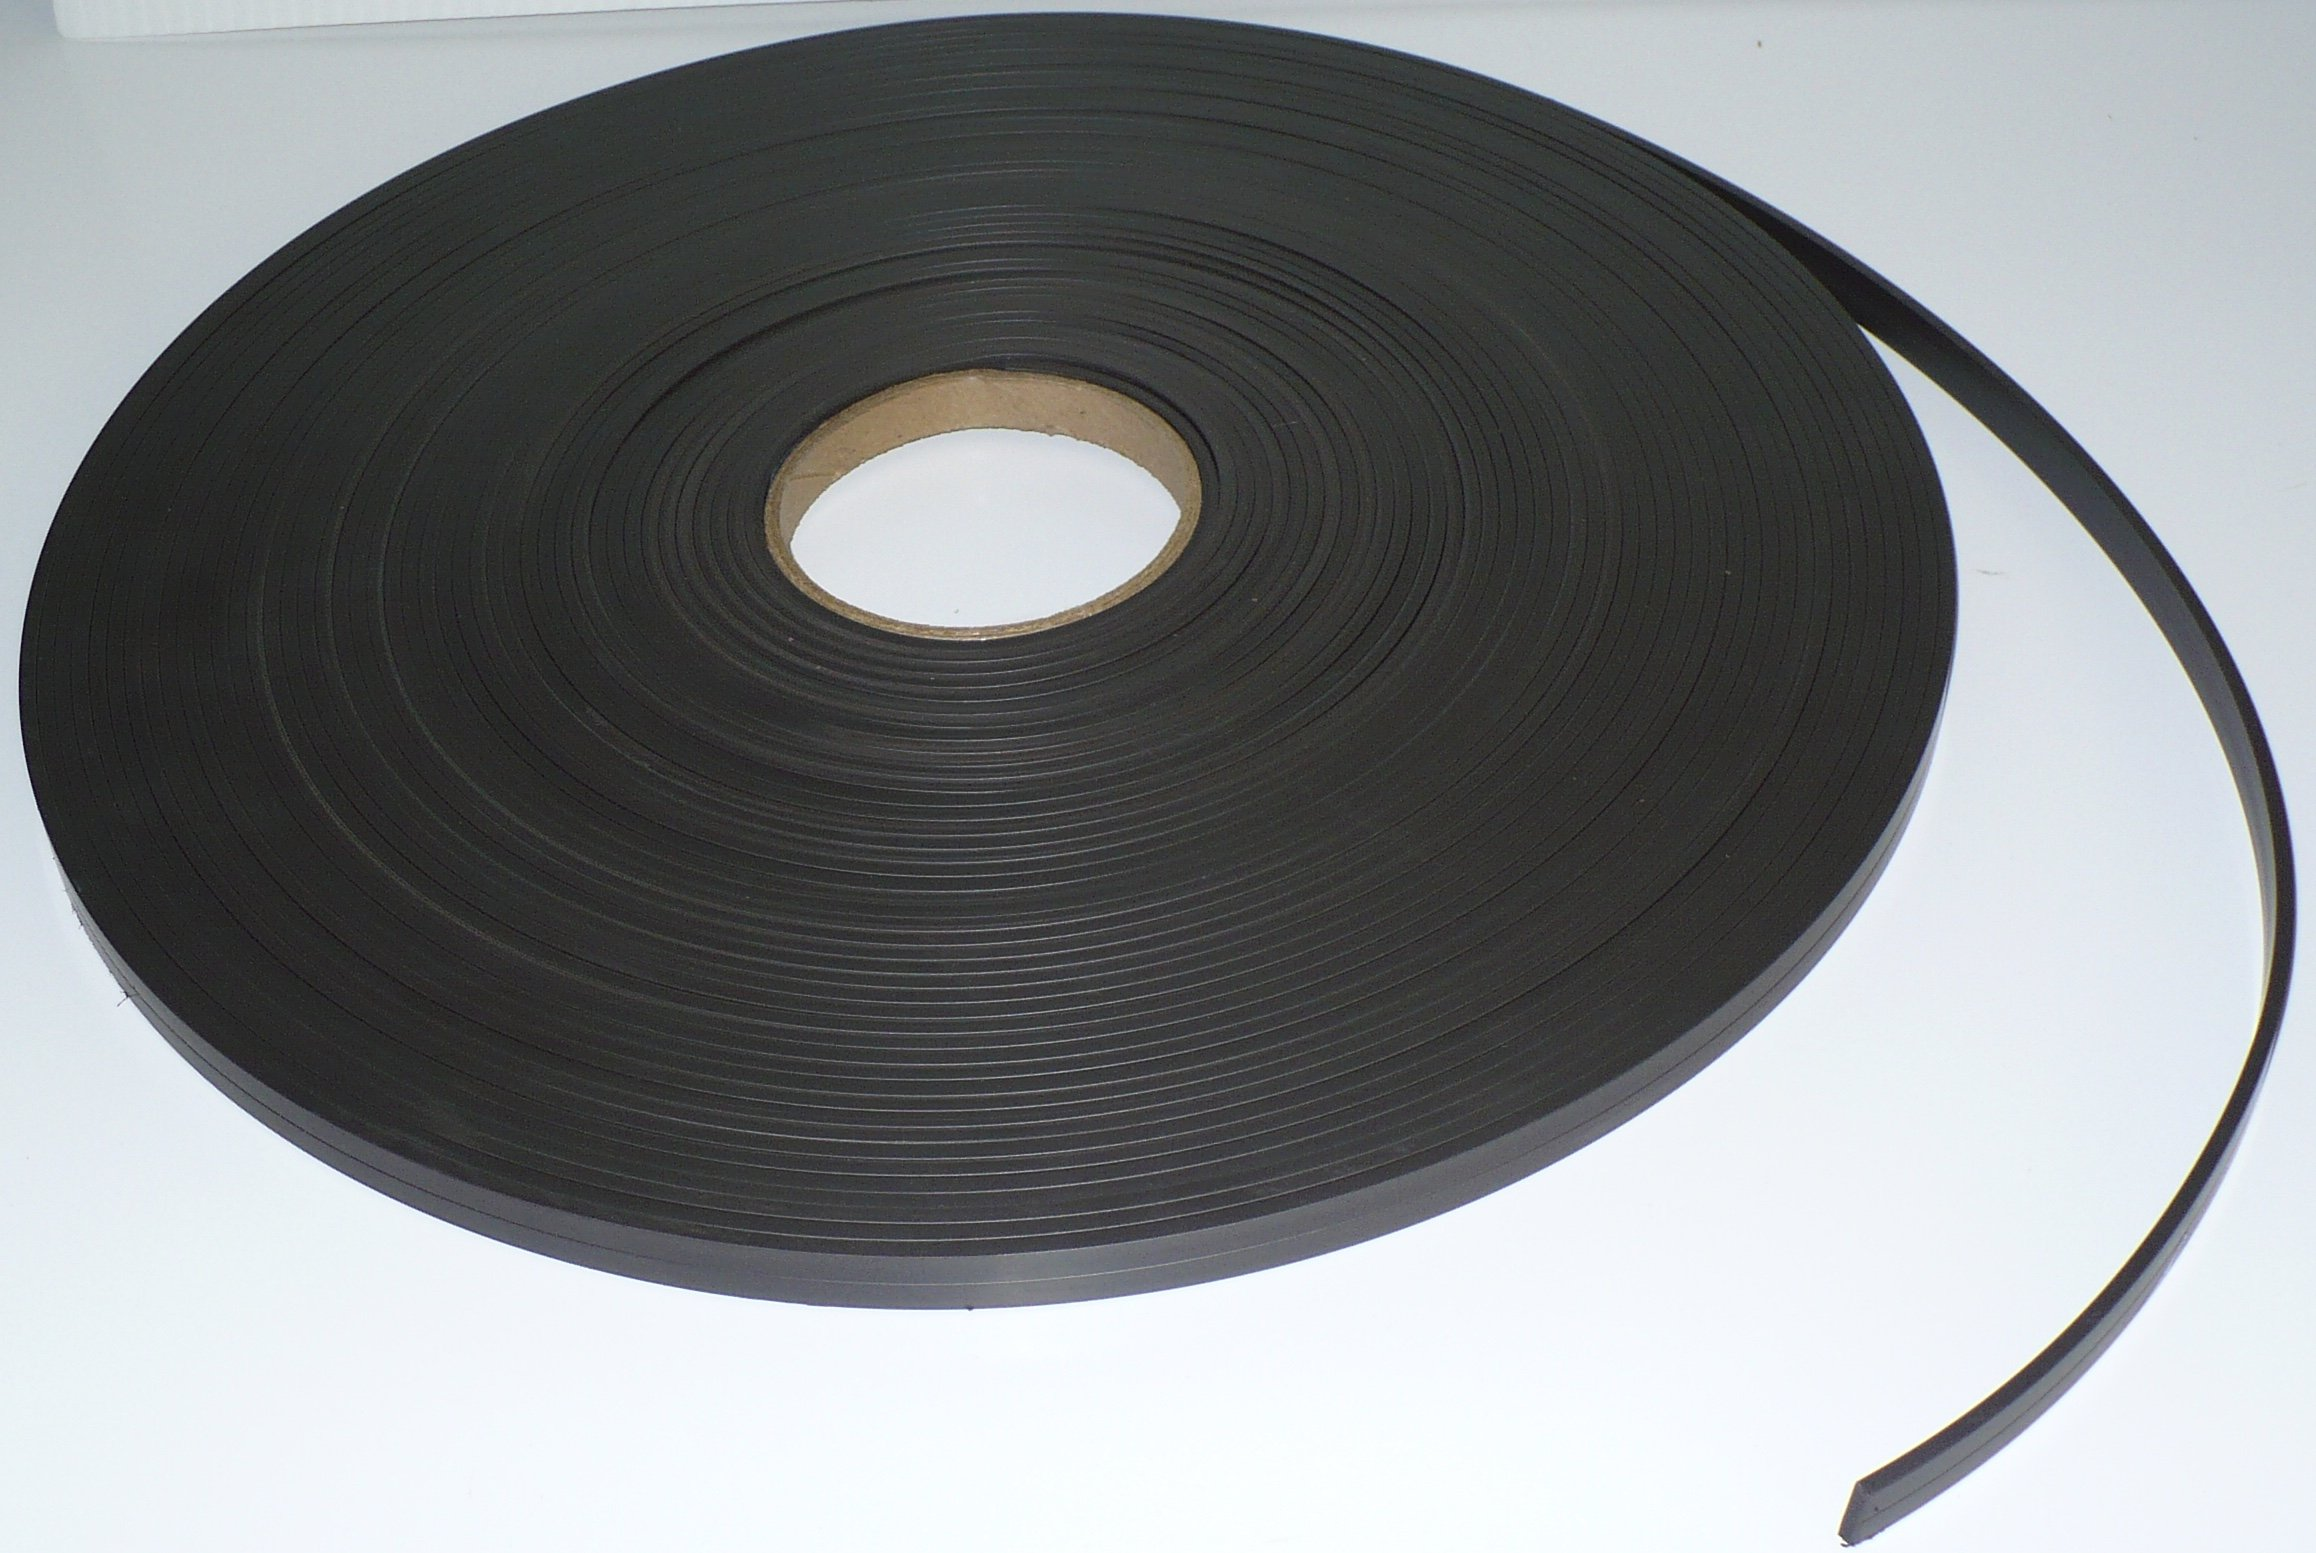 .5'' X 100' - 120 mil Plain Magnetic Strip Roll by Discount Magnets